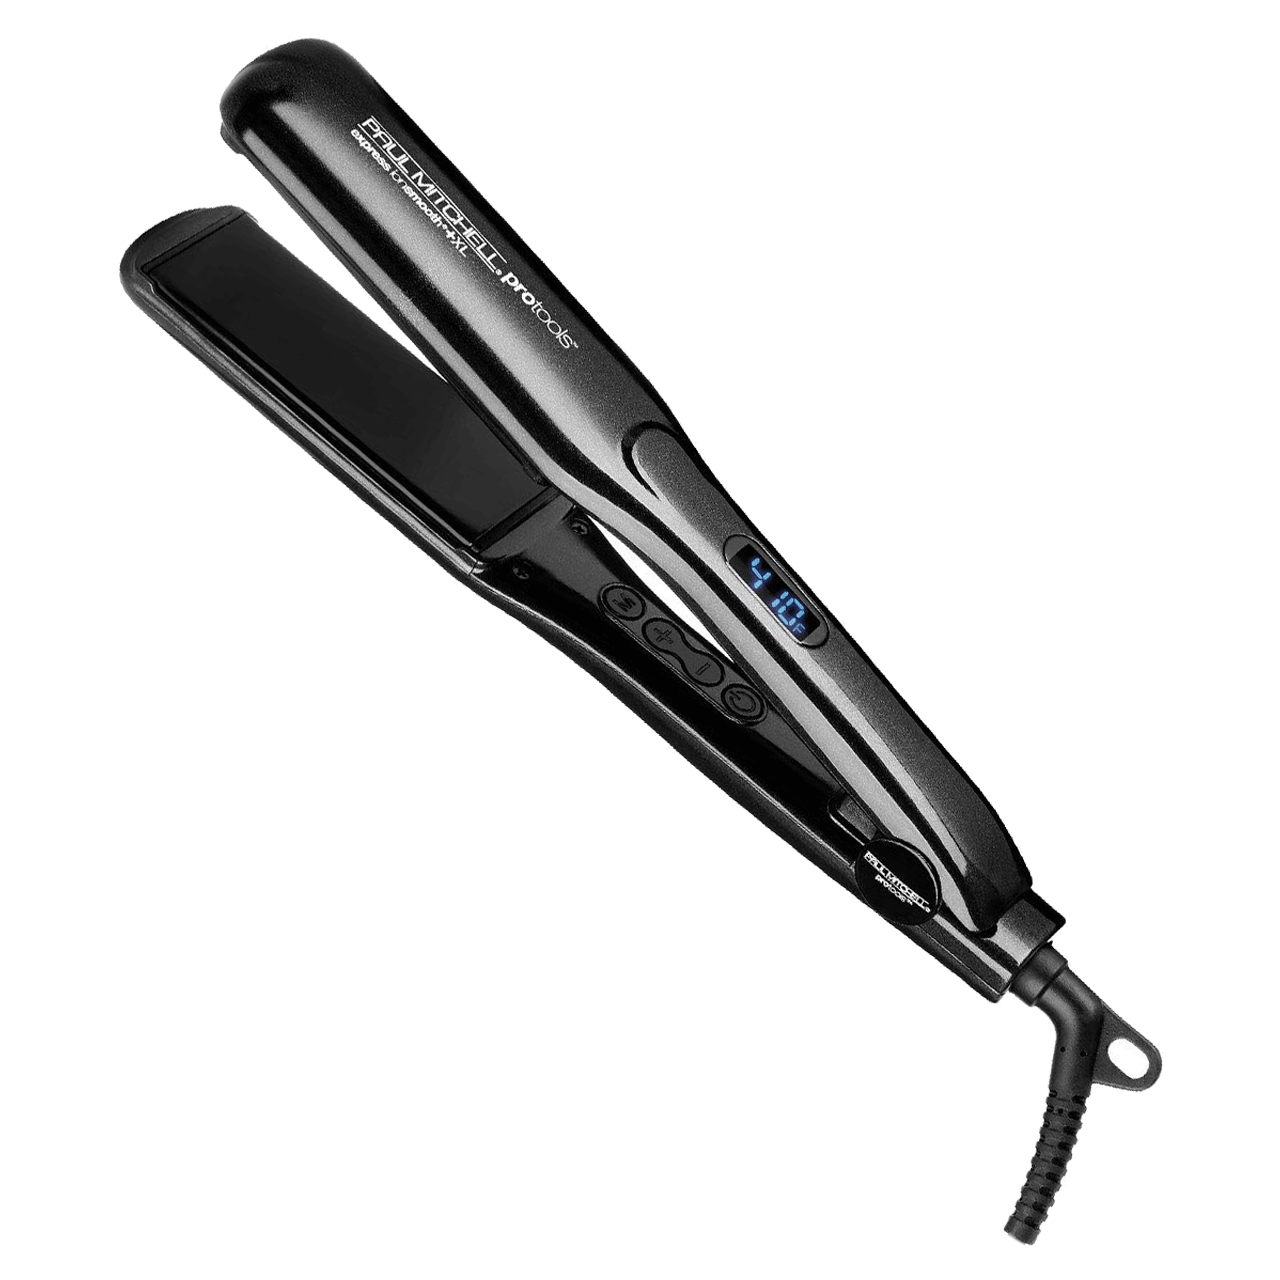 Express Ion Smooth + XL Styling Iron 1.5 Inch